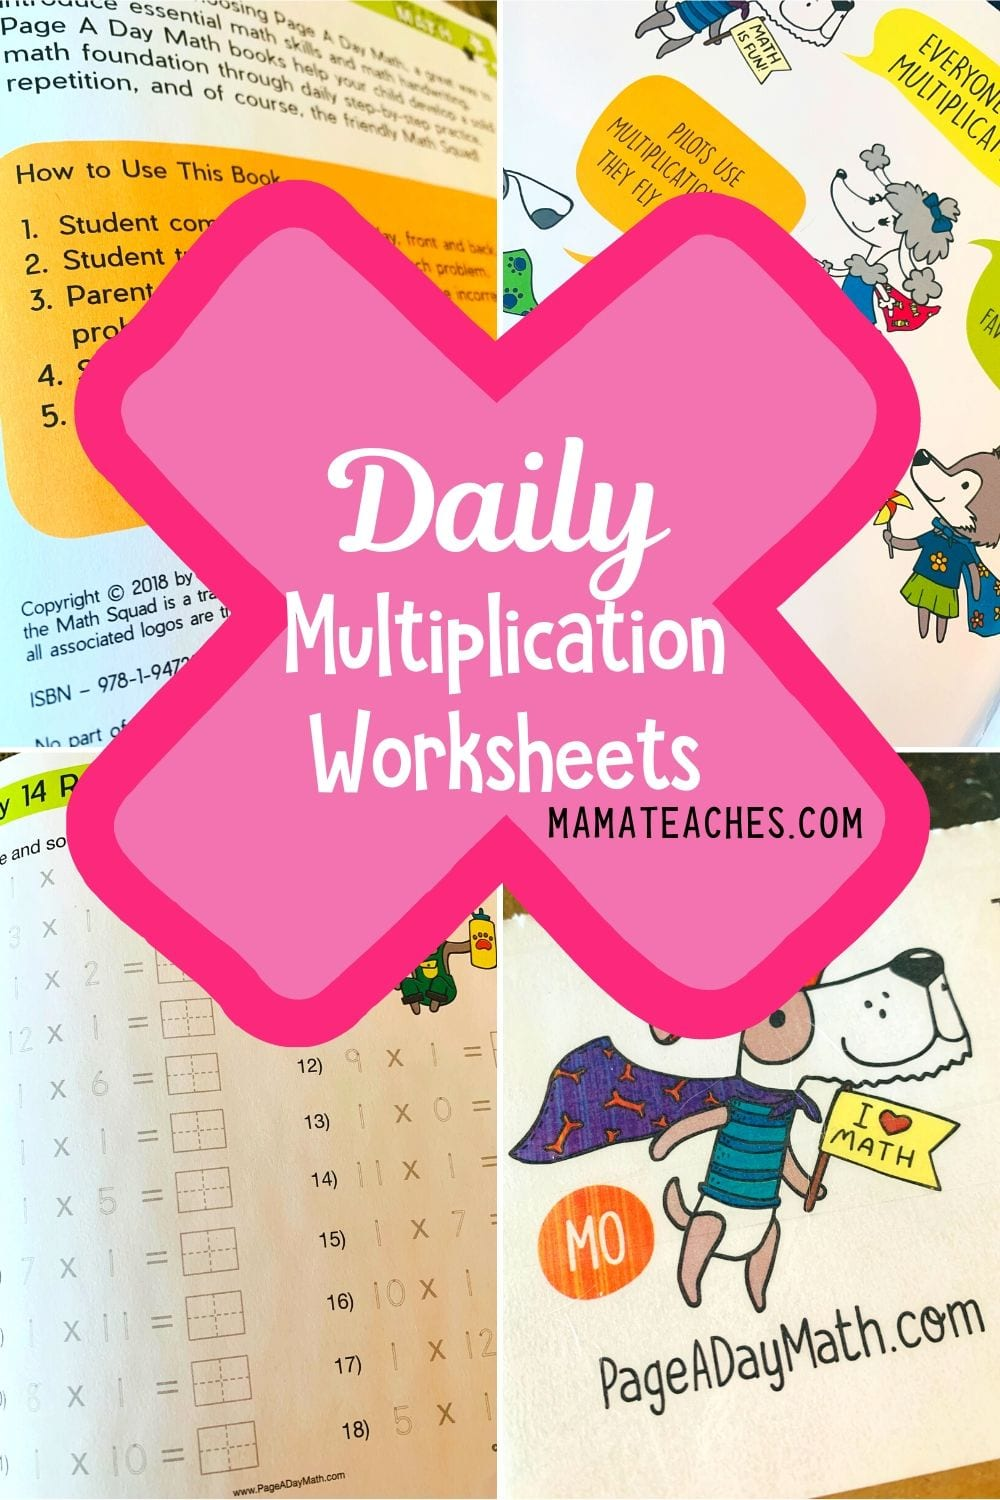 Daily Multiplication Worksheets for Kids from Page a Day Math